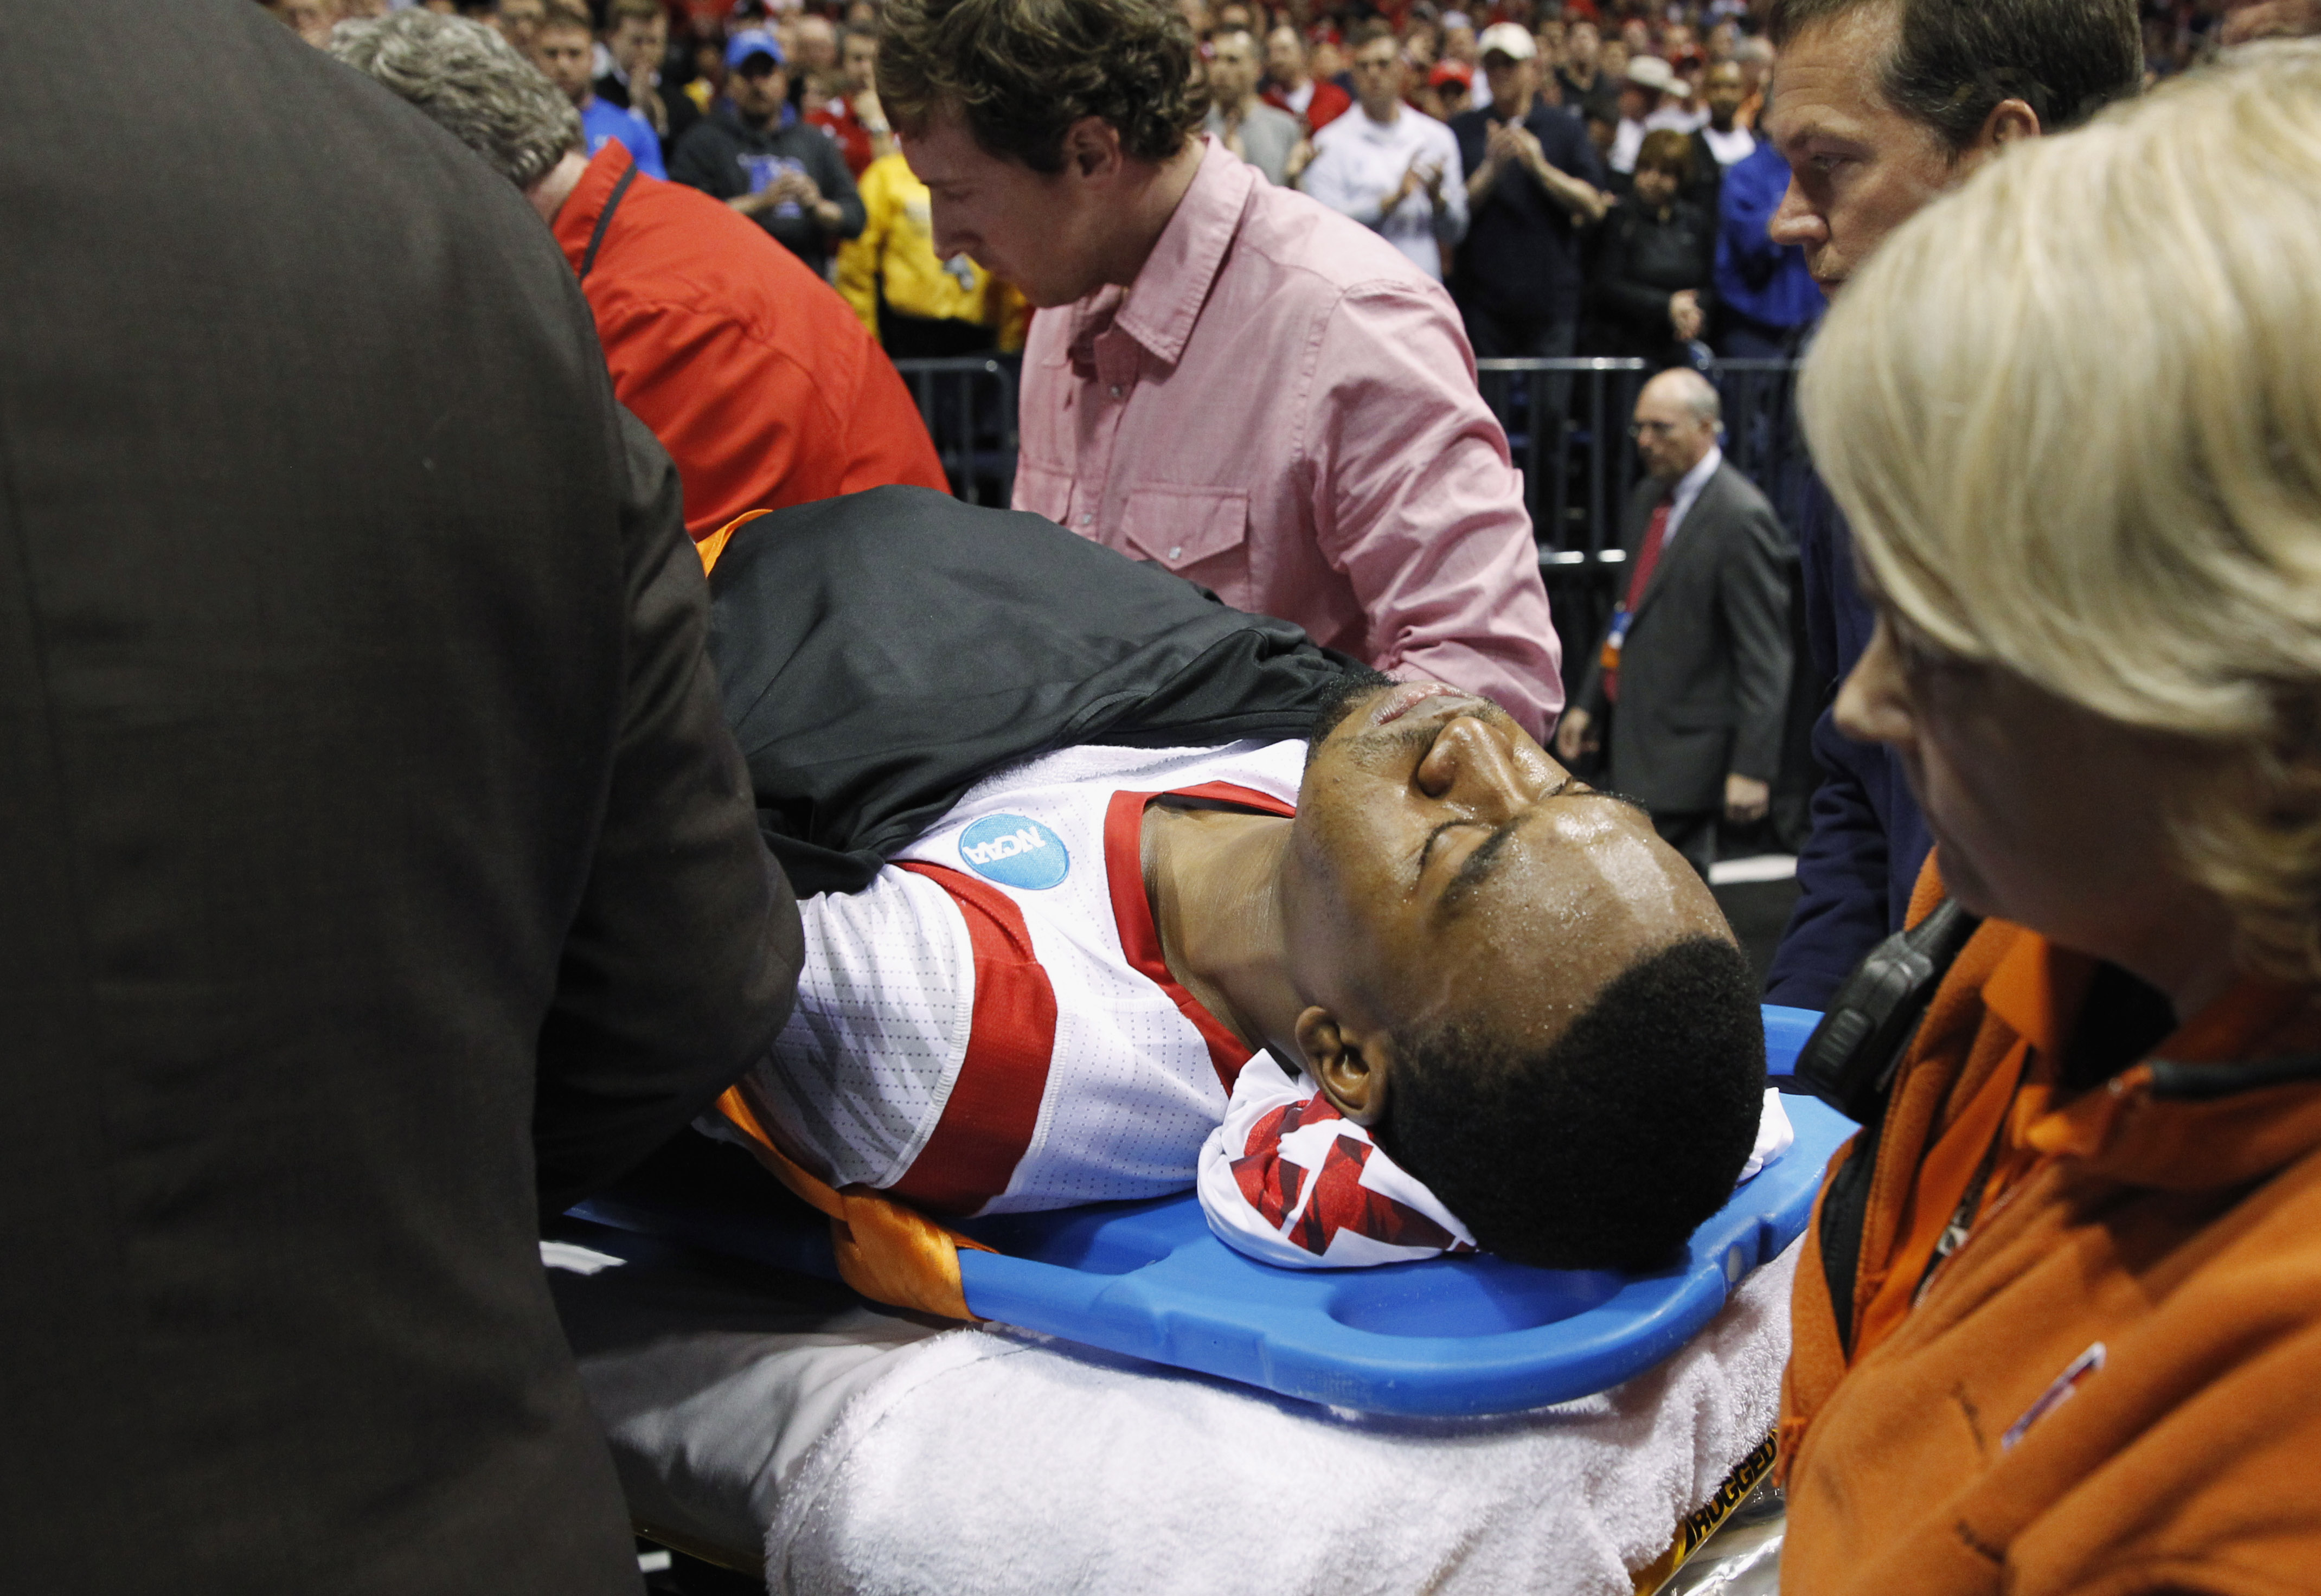 fd221168618 Kevin Ware injury could put scholarship at risk. By Brian Montopoli